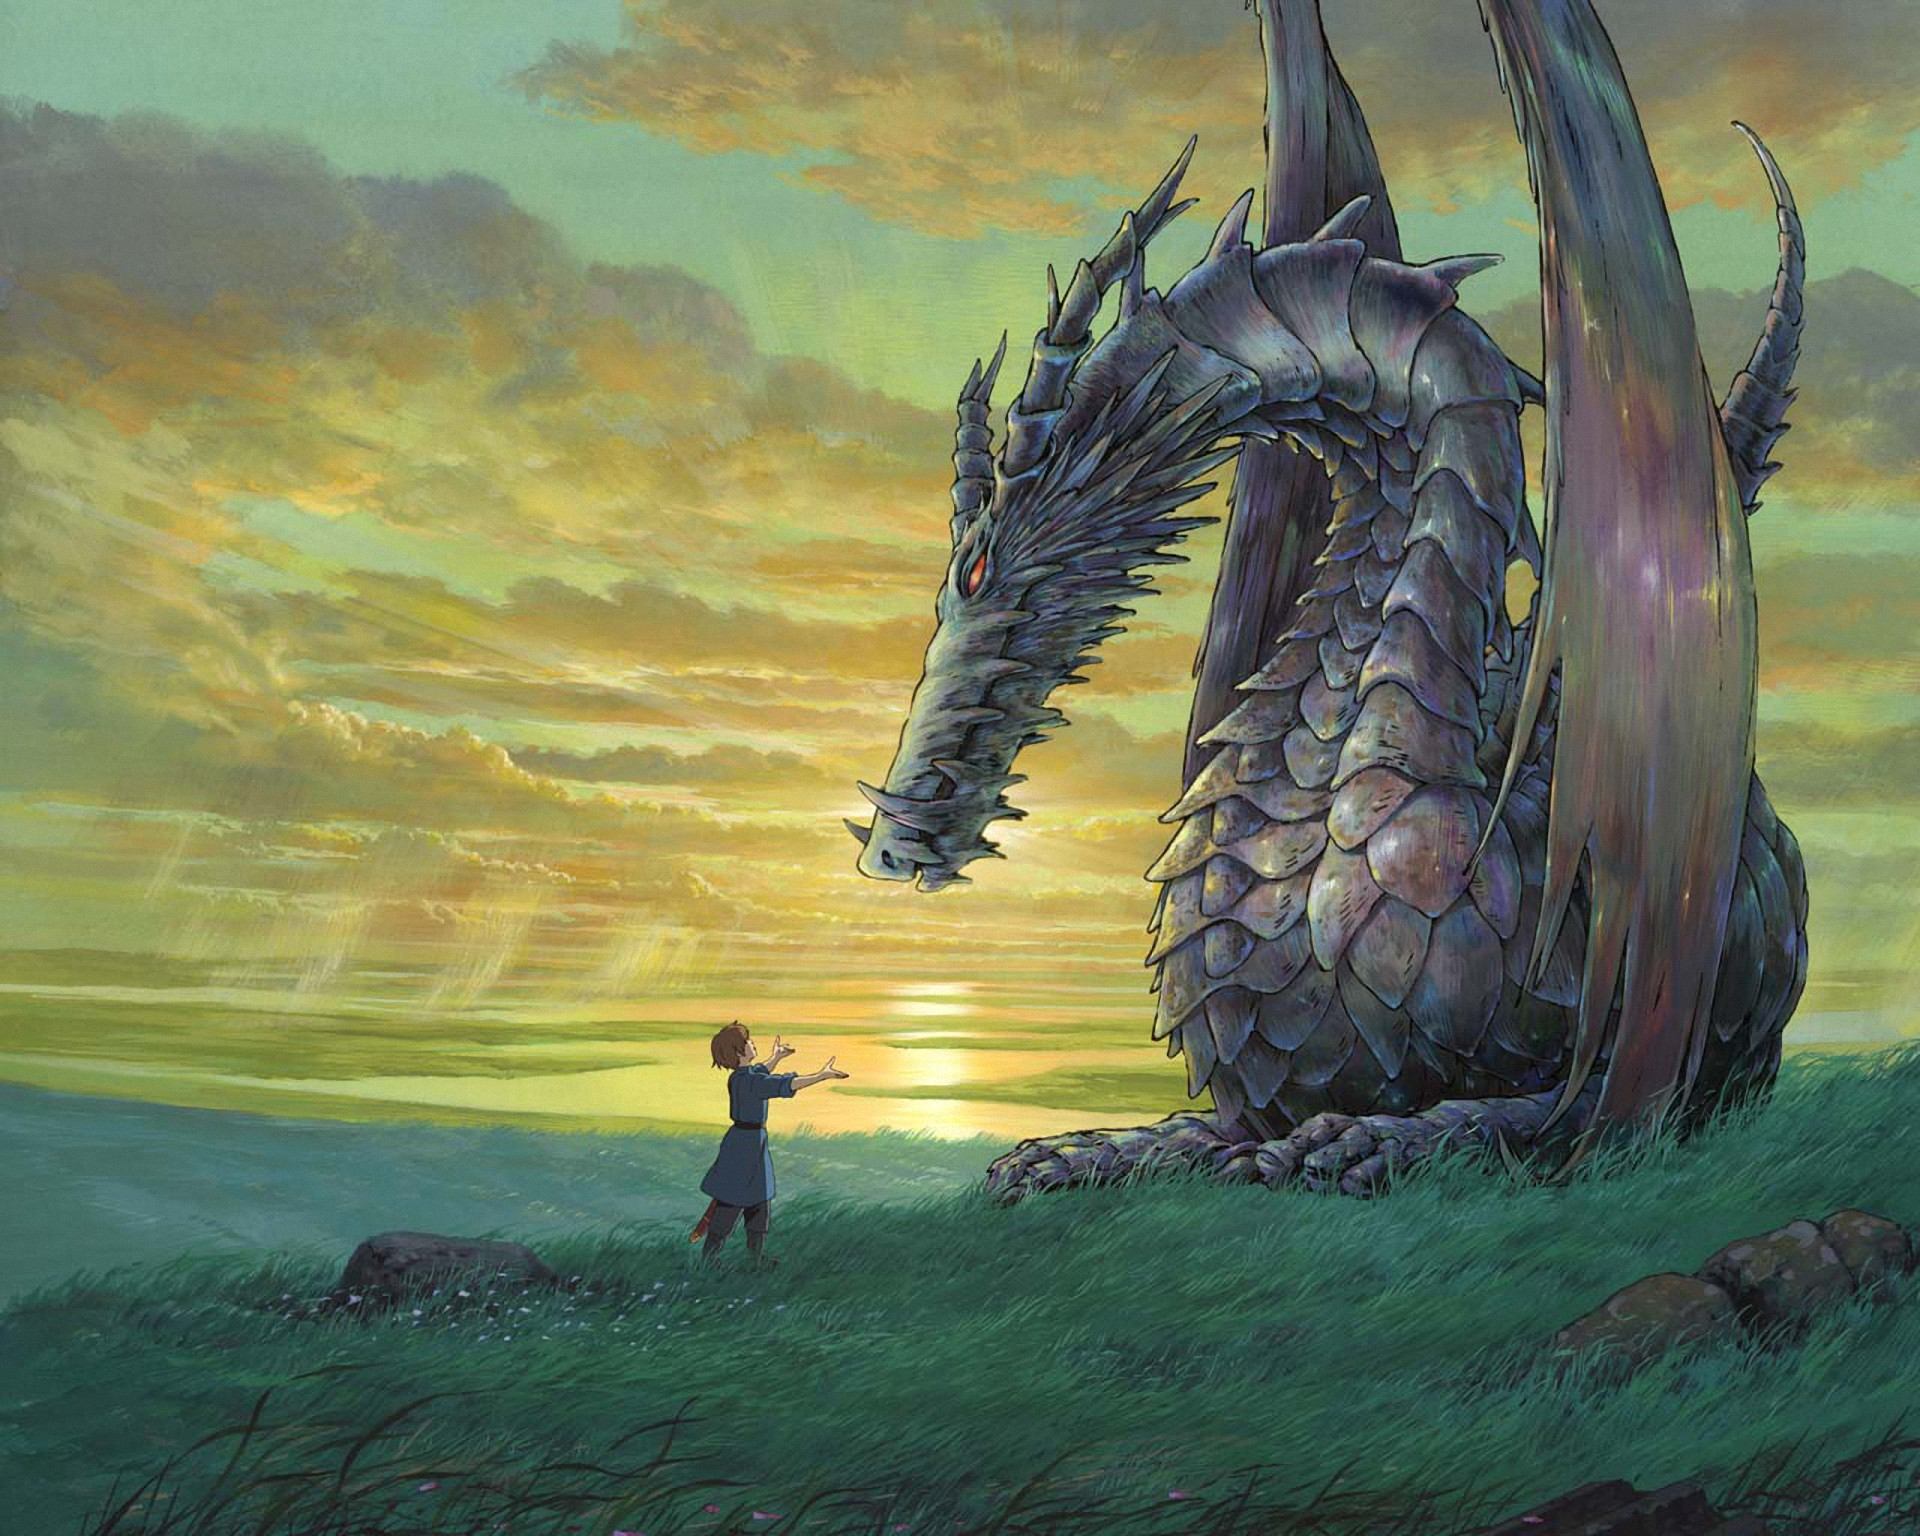 Anime - Tales From Earthsea  - Brave Boy - Beast - Dragon Tamer - Draak - Studio - Ghibli - Earthsea - Anime Achtergrond